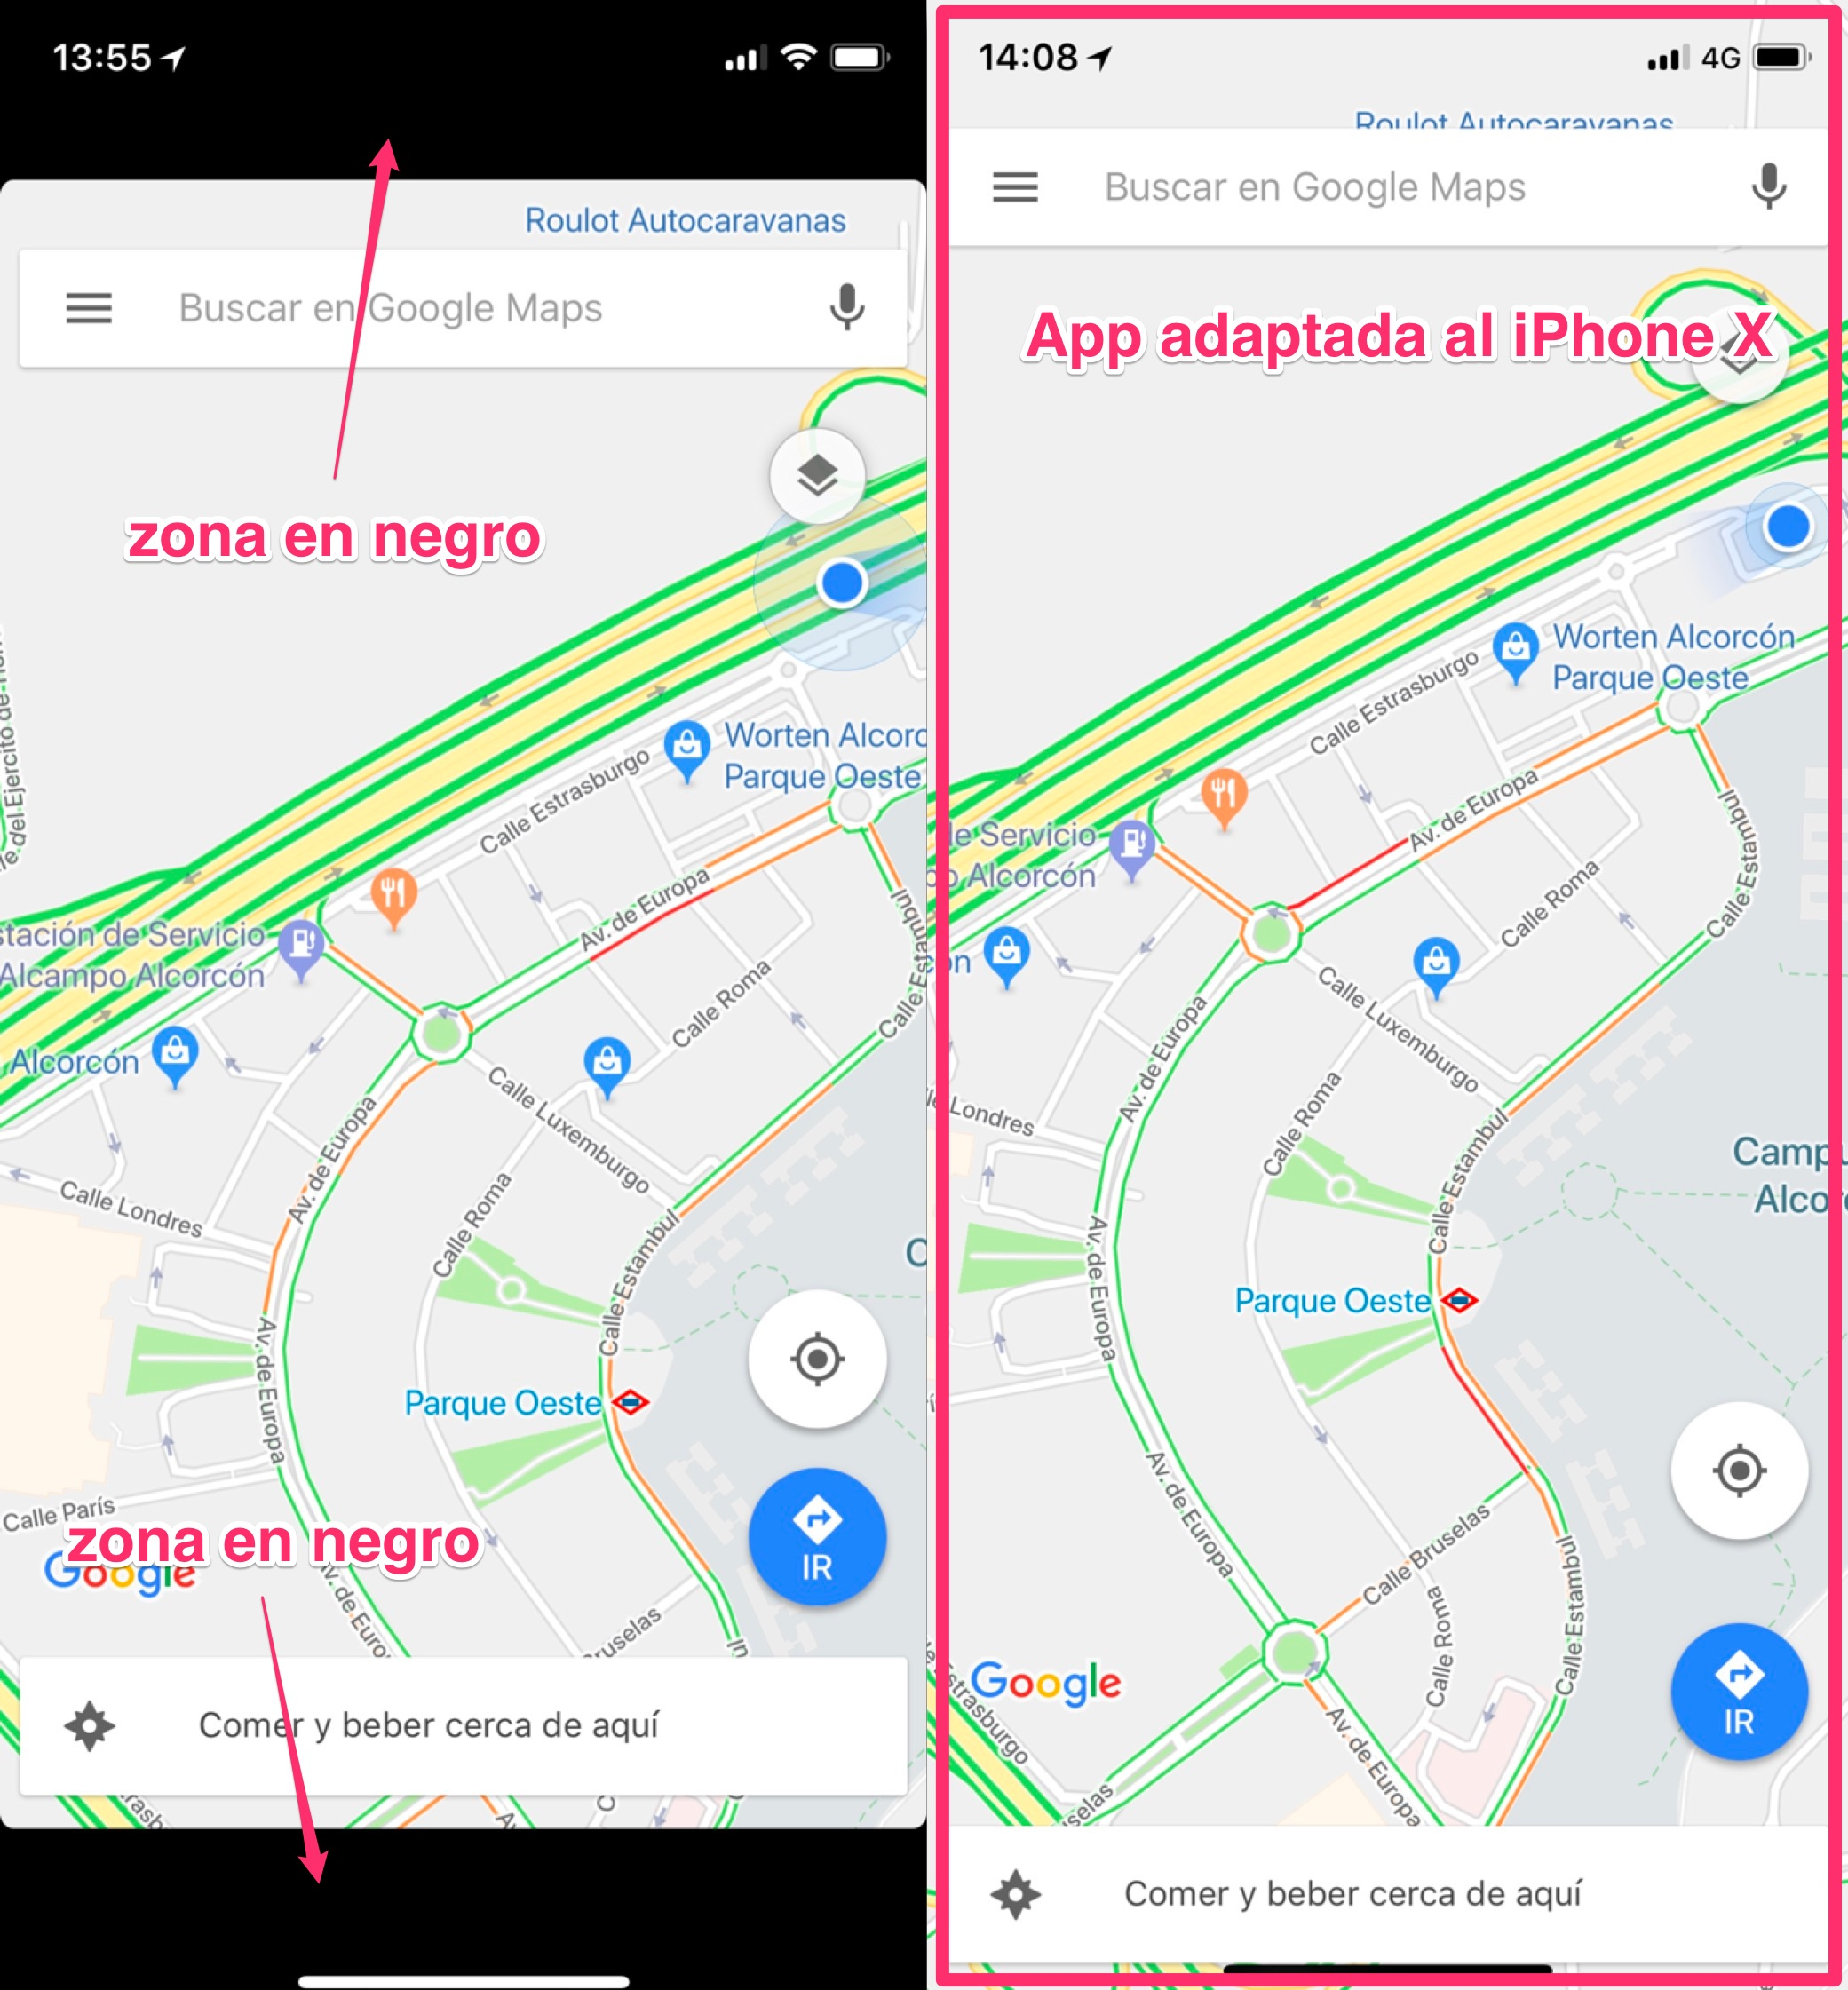 App adaptada para el iPhone X y sin adaptar